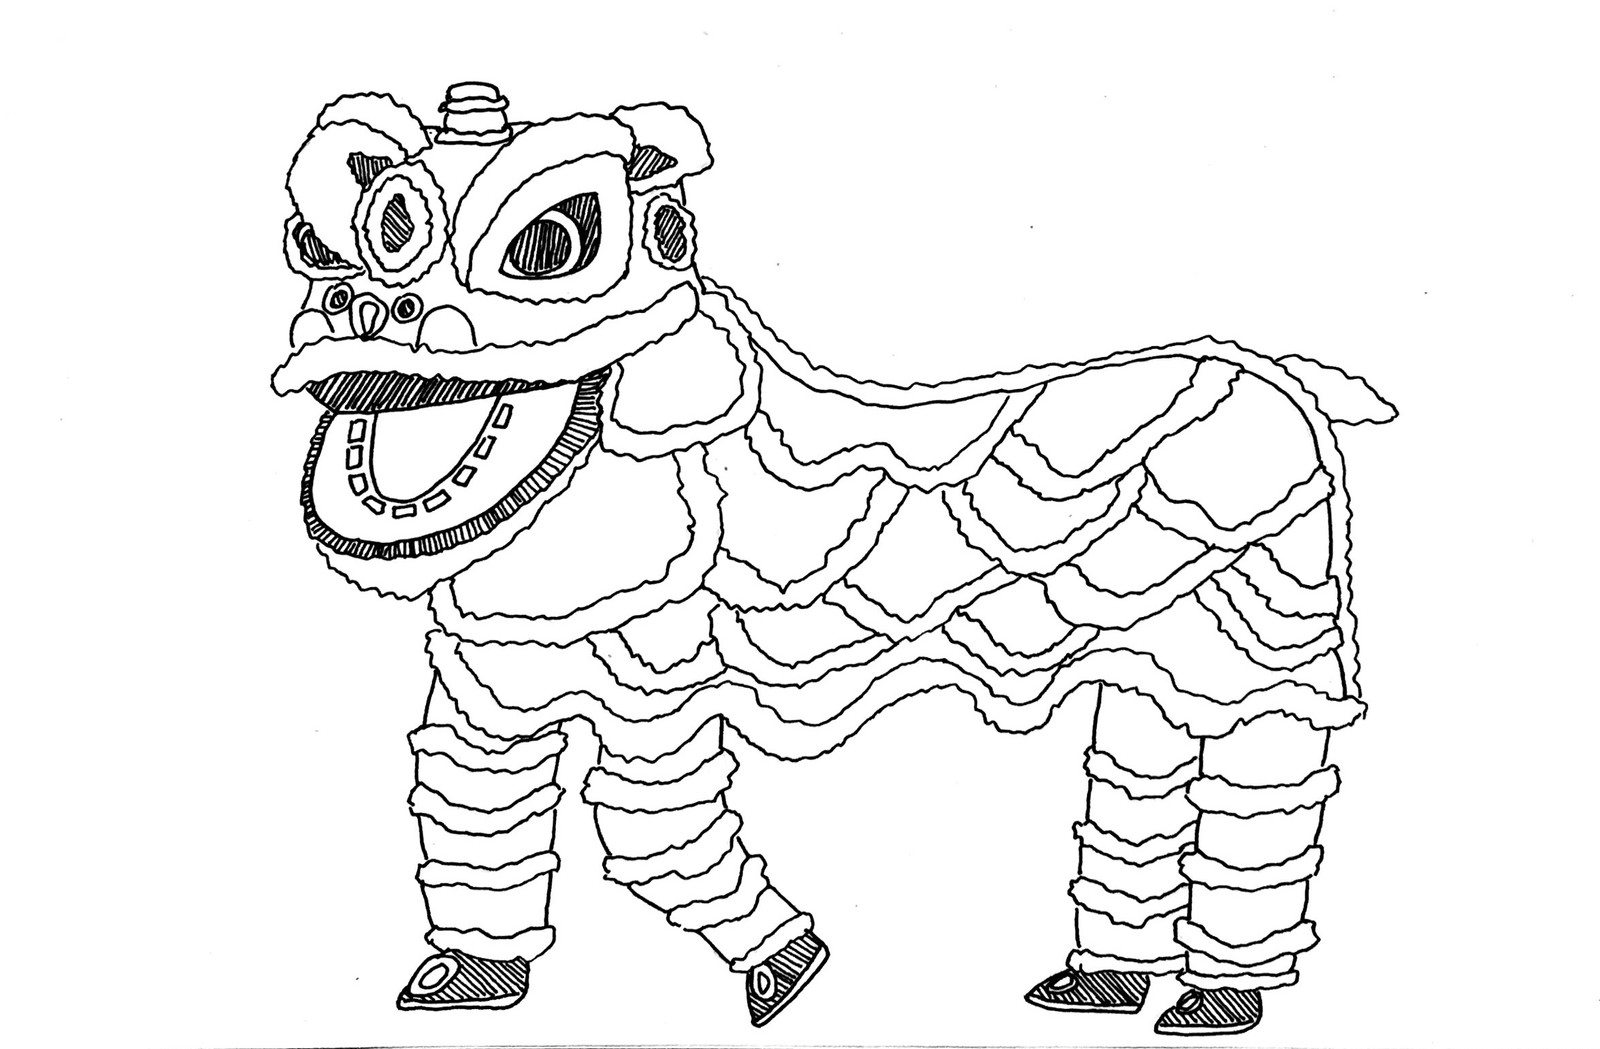 Lion Dance Drawing Easy Www Topsimages Com